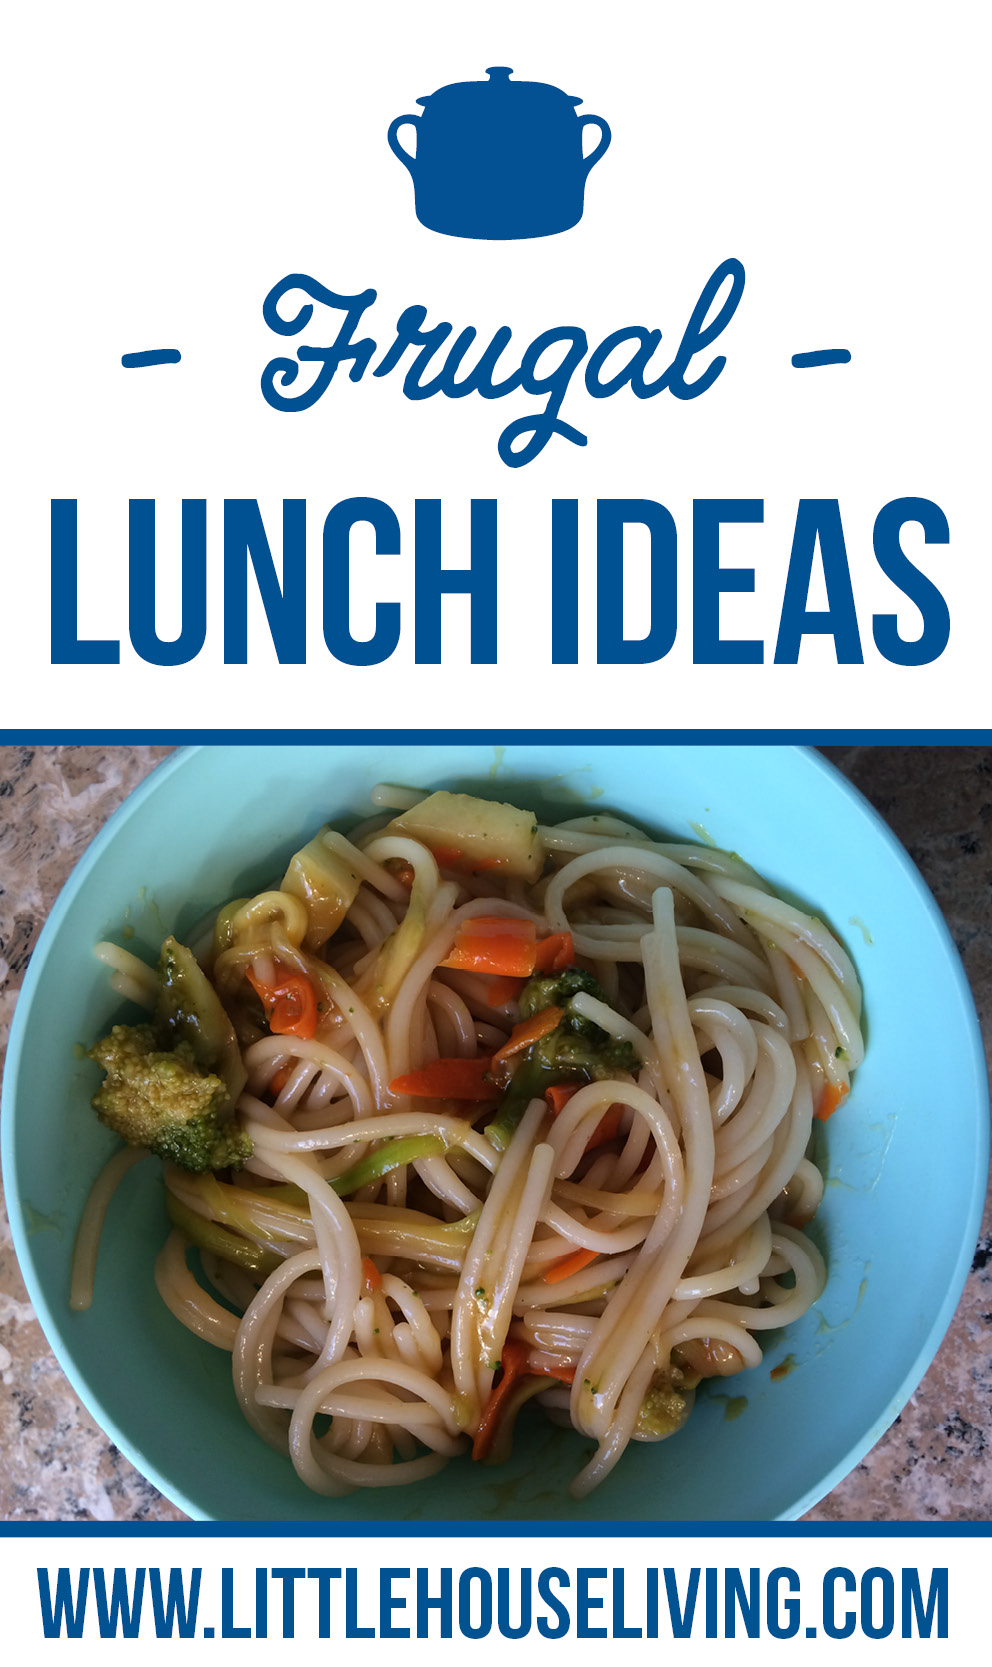 Been looking for some simple but healthy lunches that you can make on days at home? Here are some very frugal lunch ideas! #lunchideas #frugallunches #frugallunchideas #frugalfood #budgetlunches #cheapeats